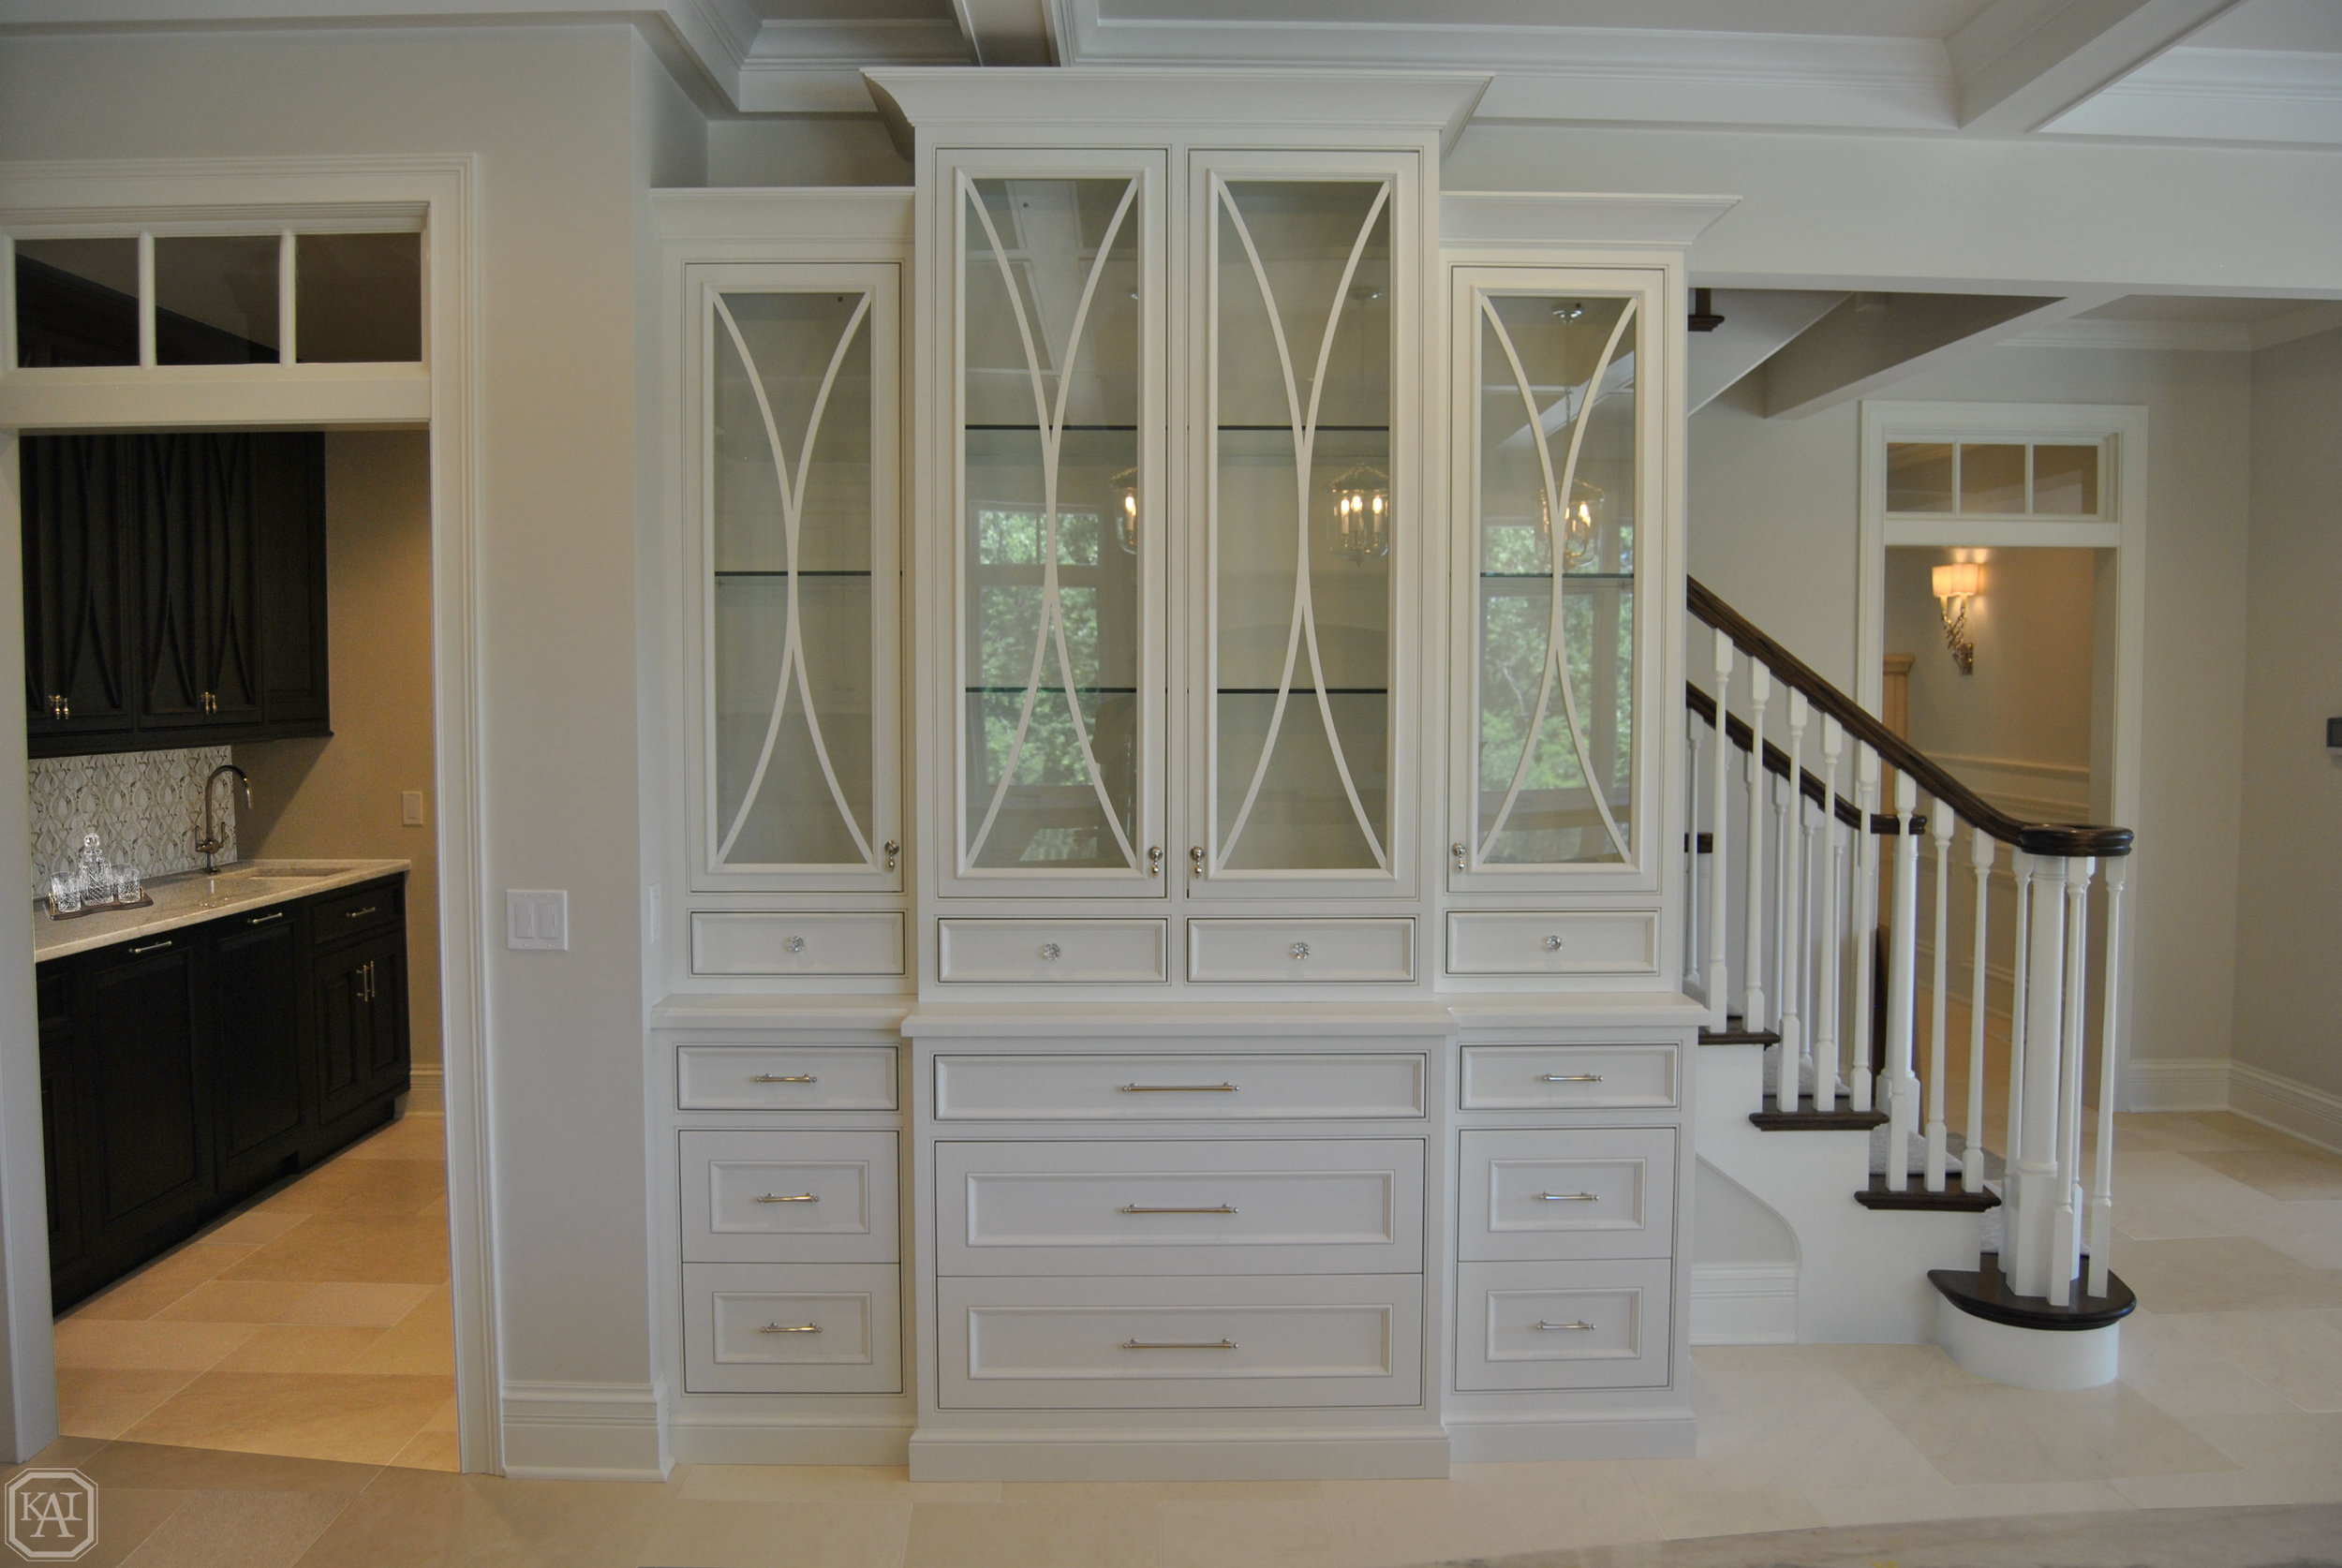 ZITELLA KITCHEN ARMOIRE W BP_1_DSC_0298_EDIT.jpg